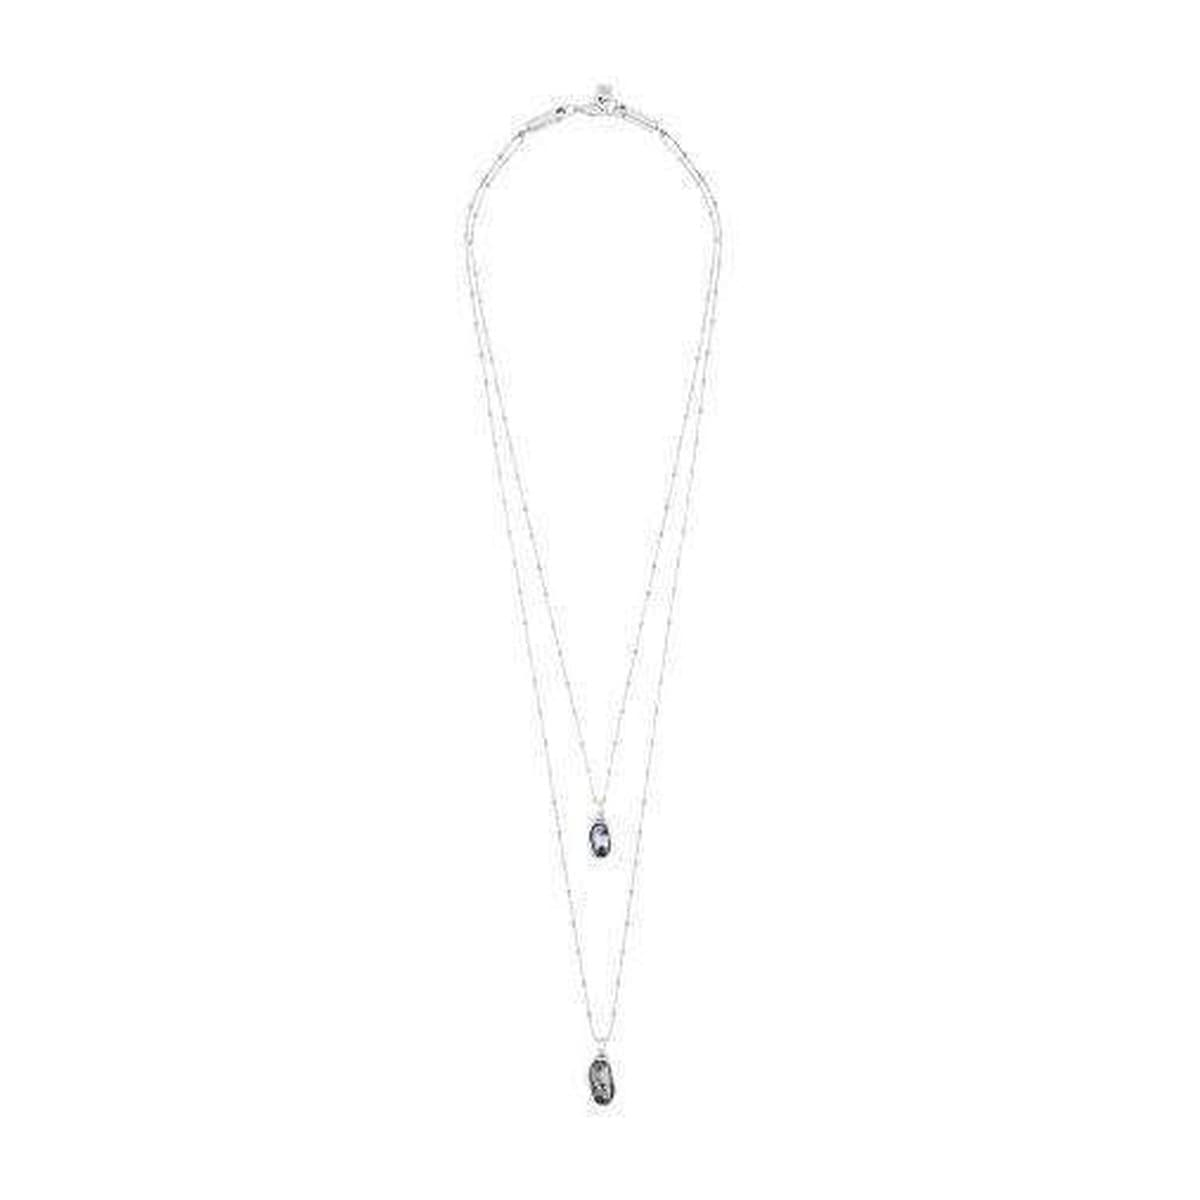 On Tip Toes Necklace - COL0814HUMAZU0U